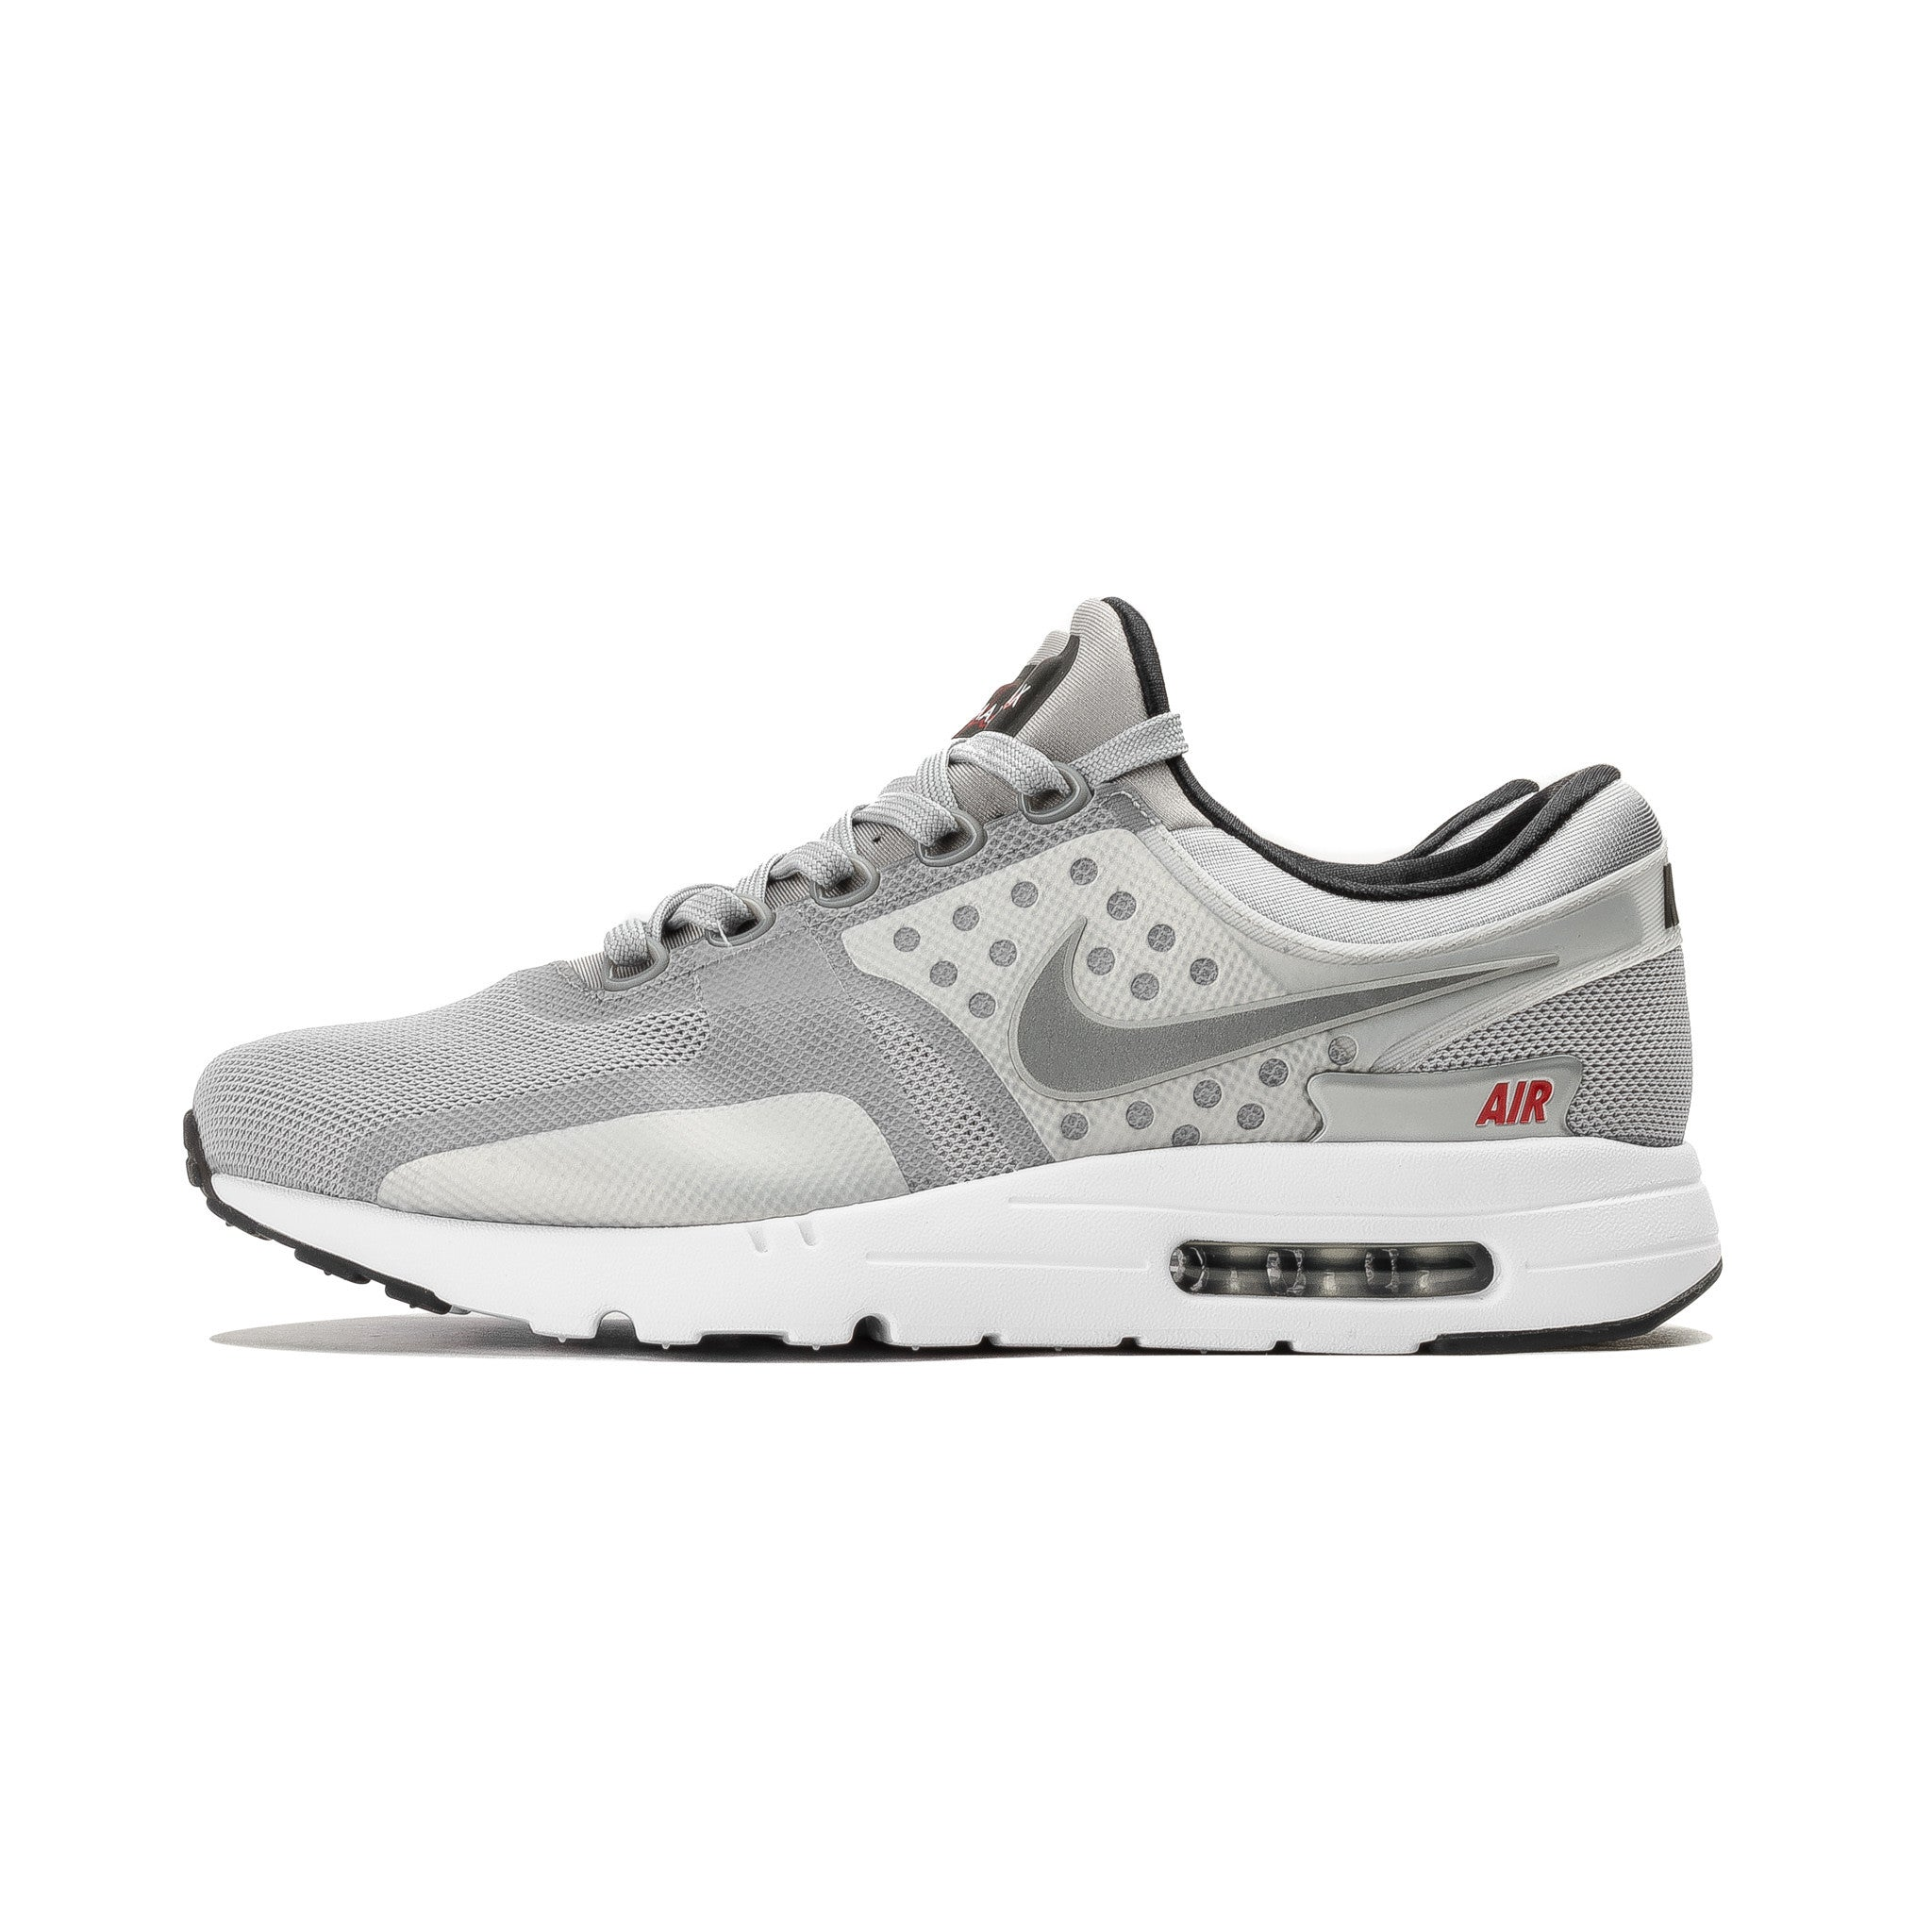 Air Max Zero QS 789695-002 Metallic Silver